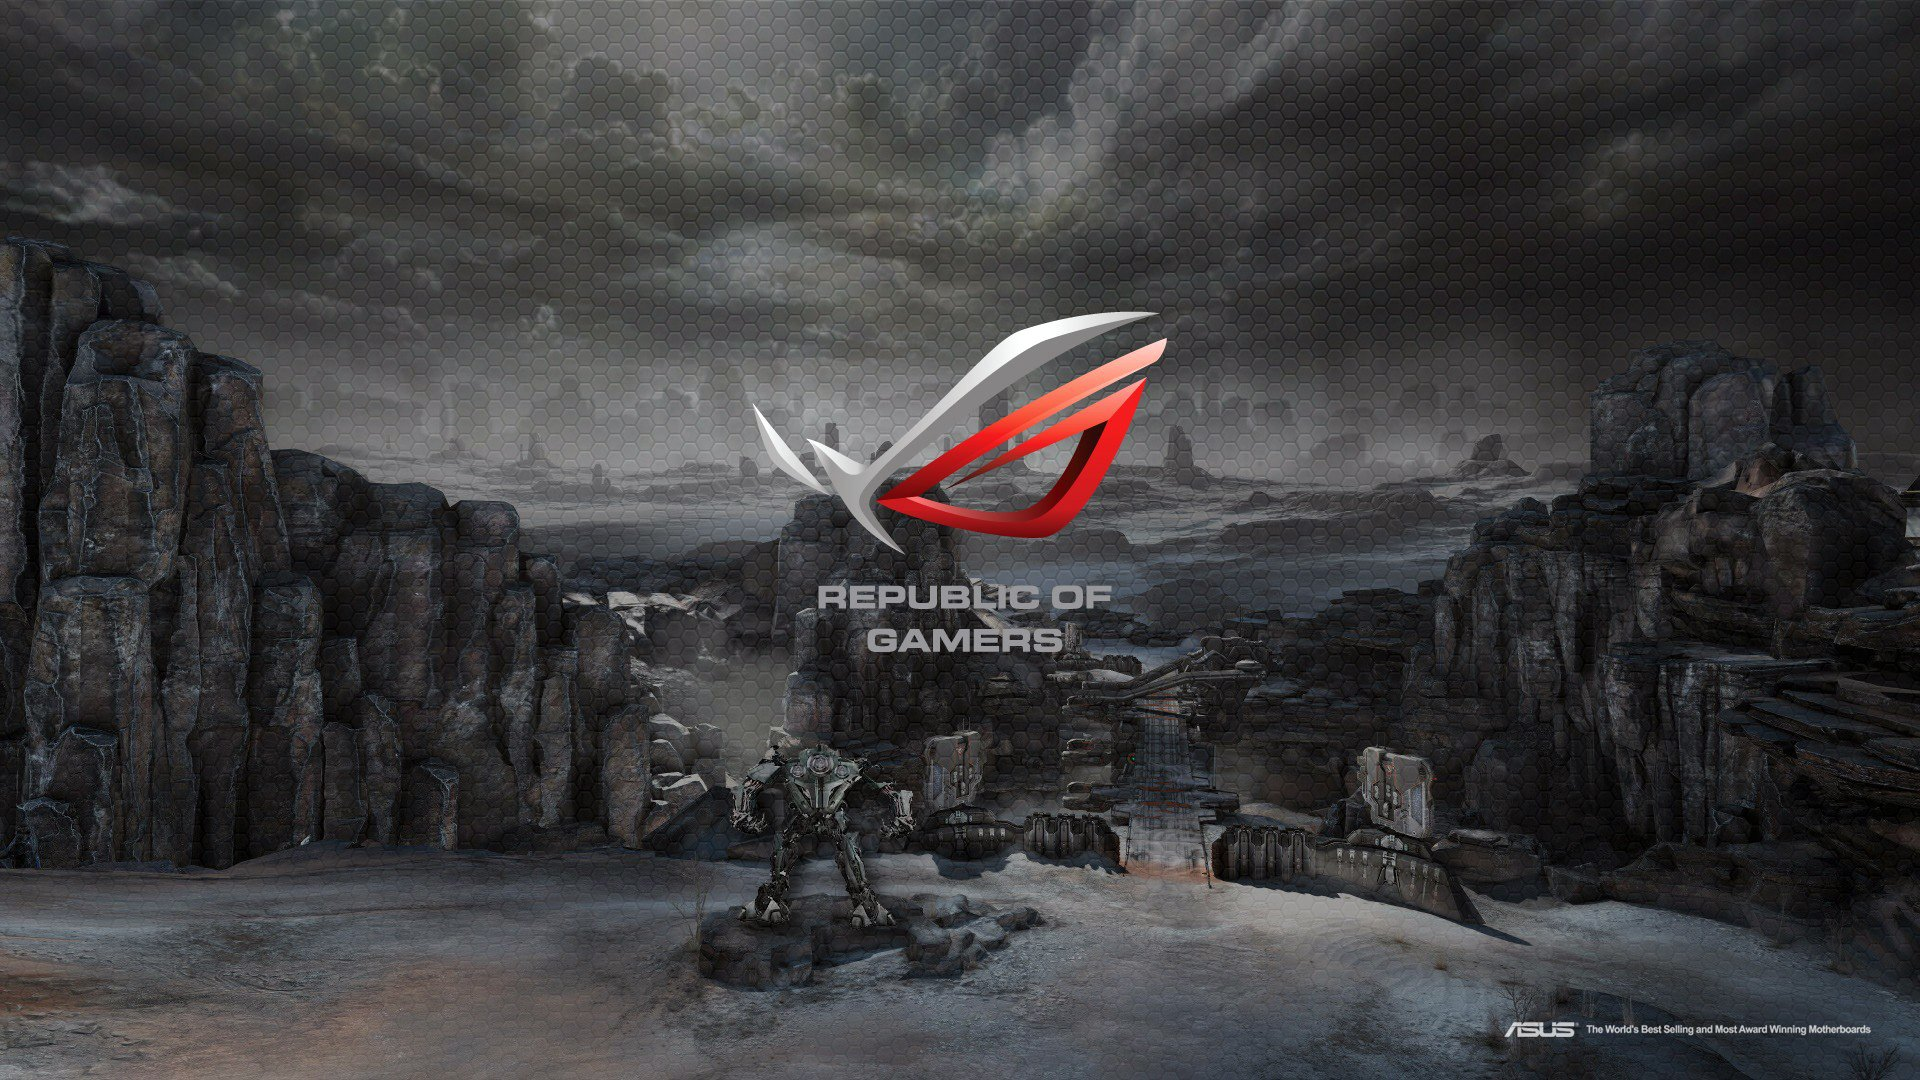 ASUS REPUBLIC GAMERS Computer Game Wallpaper Background 1920x1080